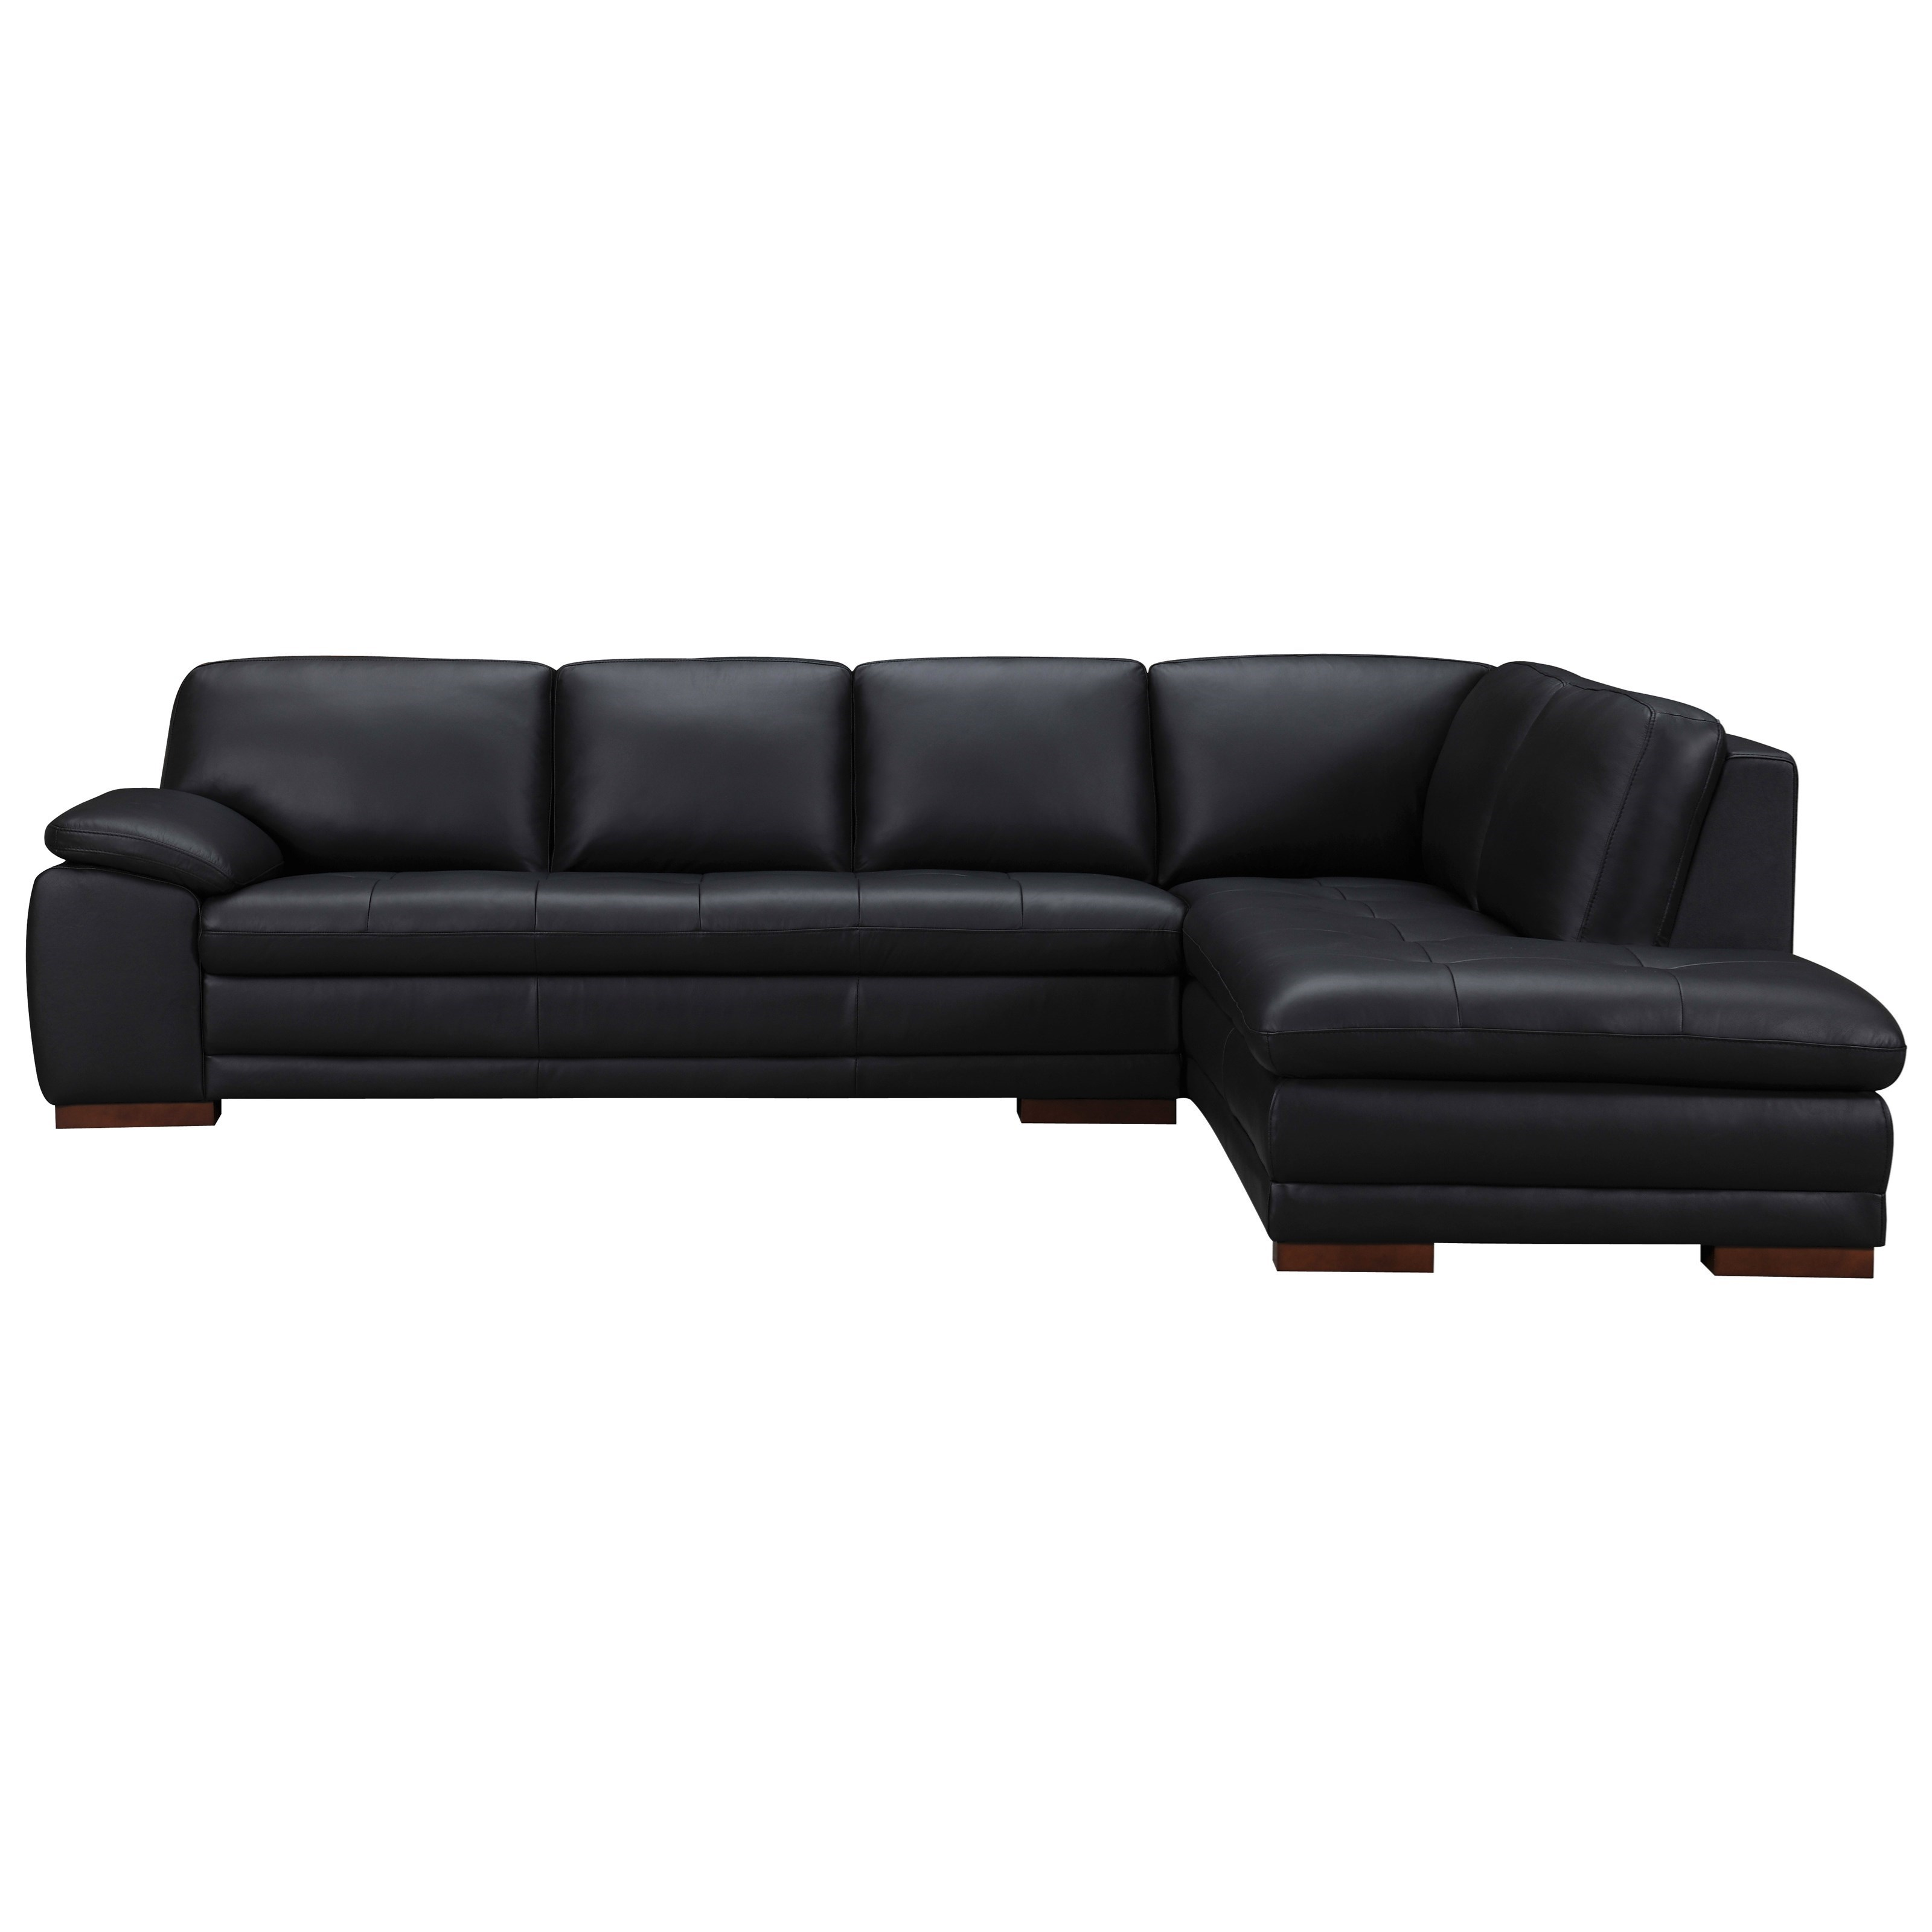 5038 Sectional Sofa by Violino at Furniture Superstore - Rochester, MN